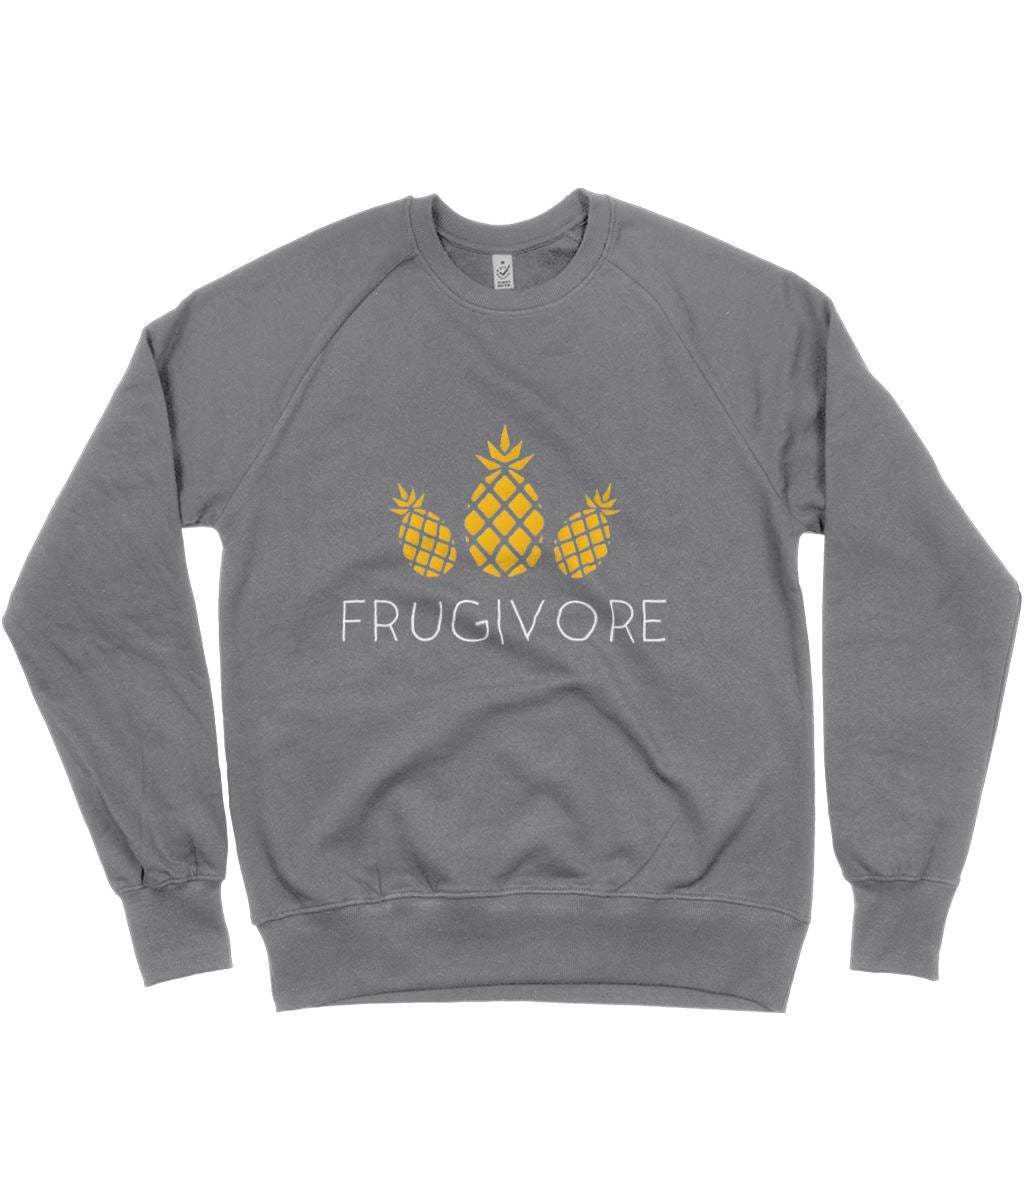 """Frugivore"" Vegan Sweatshirt - 100% Organic Cotton (Unisex) Clothing Vegan Original Dark Heather Small"